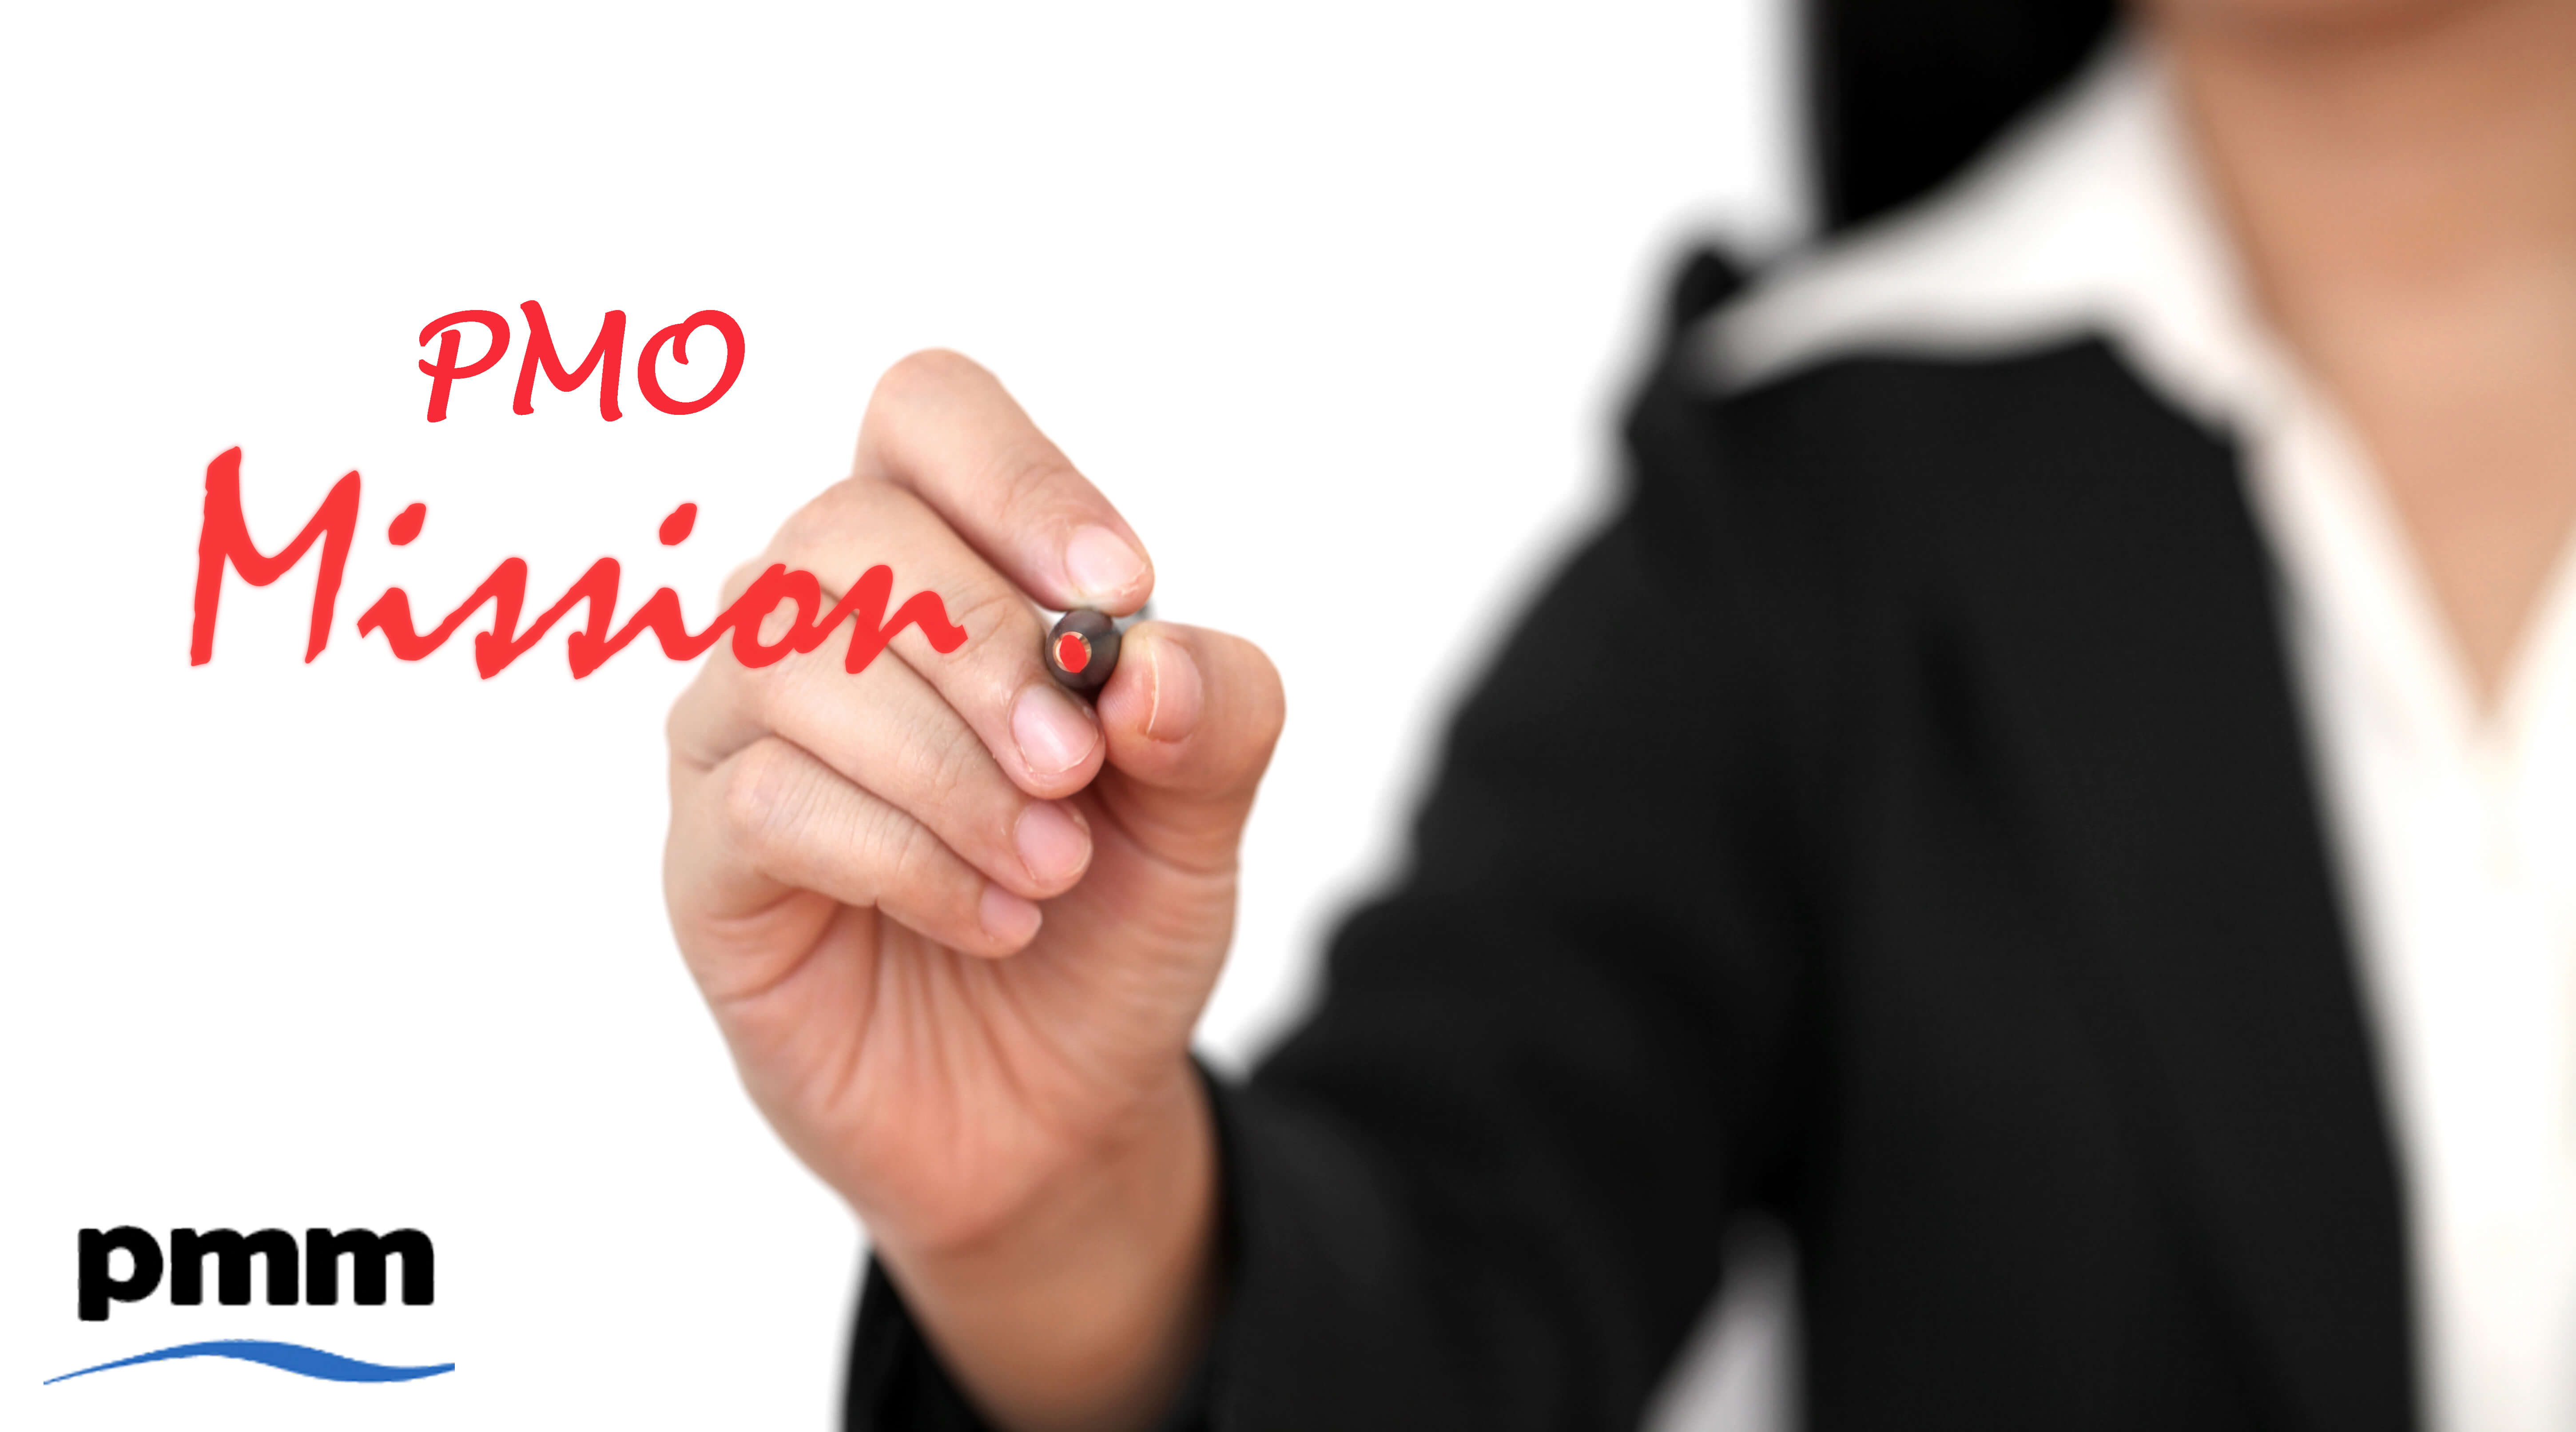 Pmo mission project management office mission statement - Project management office mission statement ...